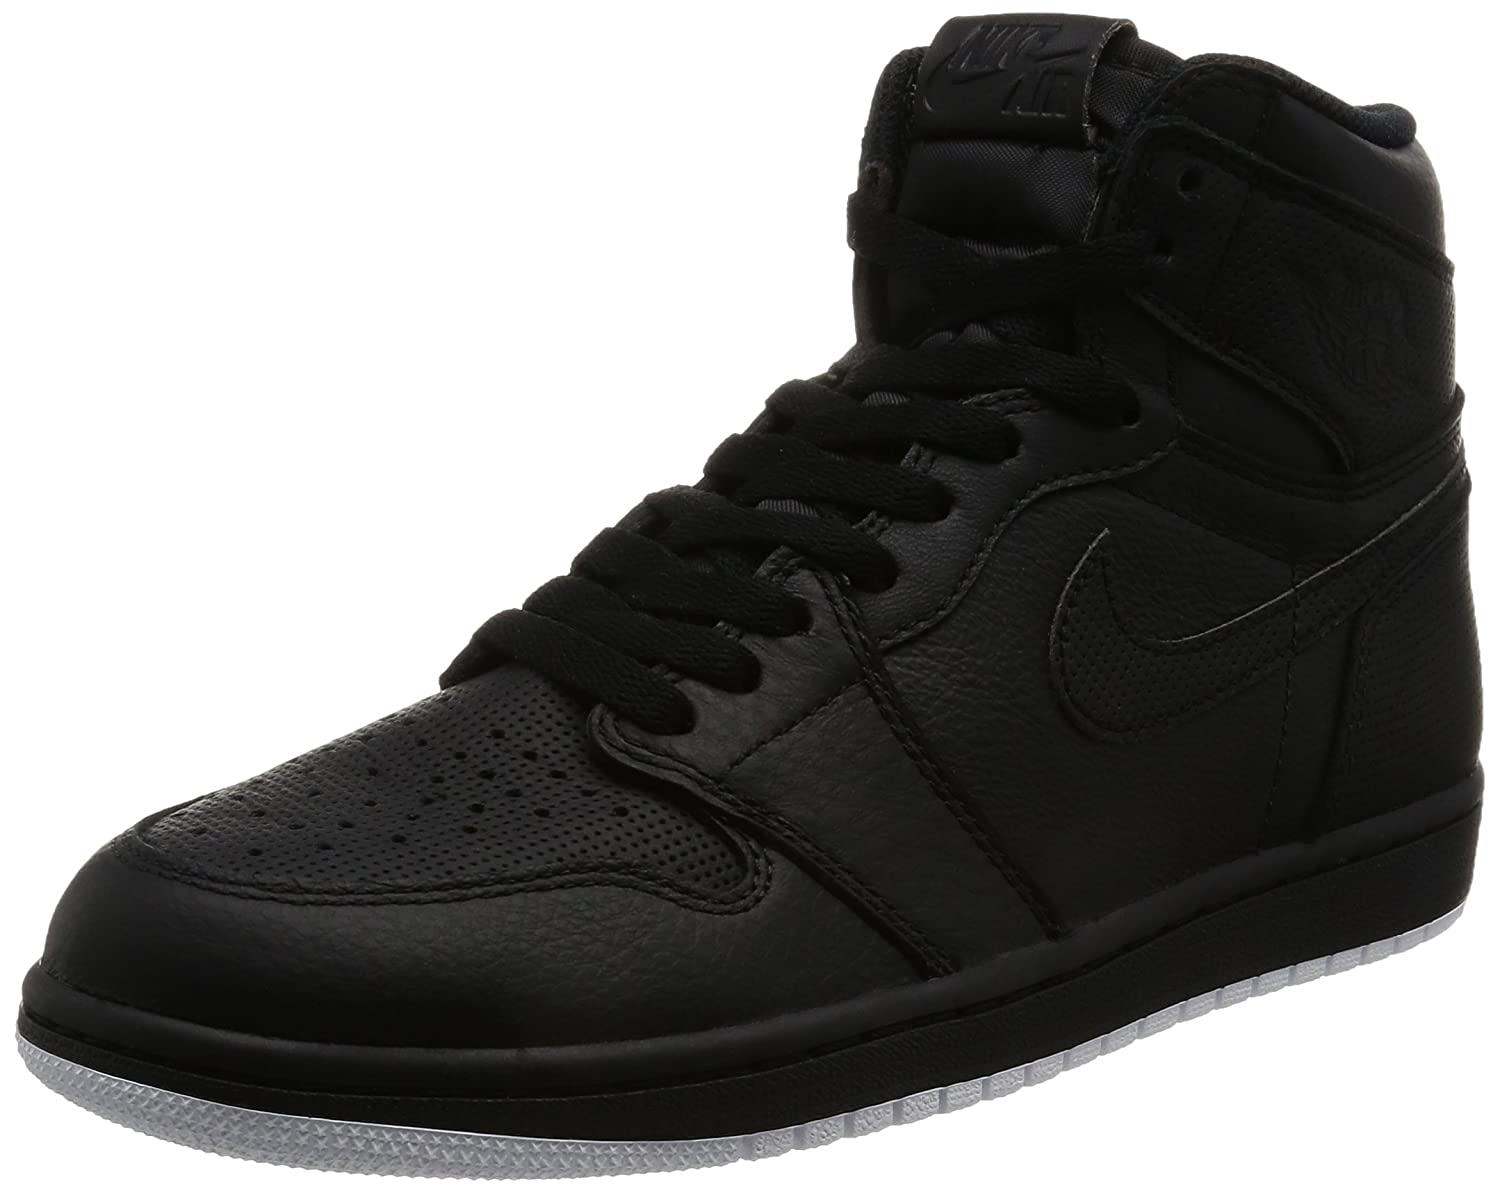 e3b700e11595f1 Amazon.com: Nike Jordan Mens Air Jordan 1 Retro High OG Black/White Black  Basketball Shoe 9 Men US: Sports & Outdoors